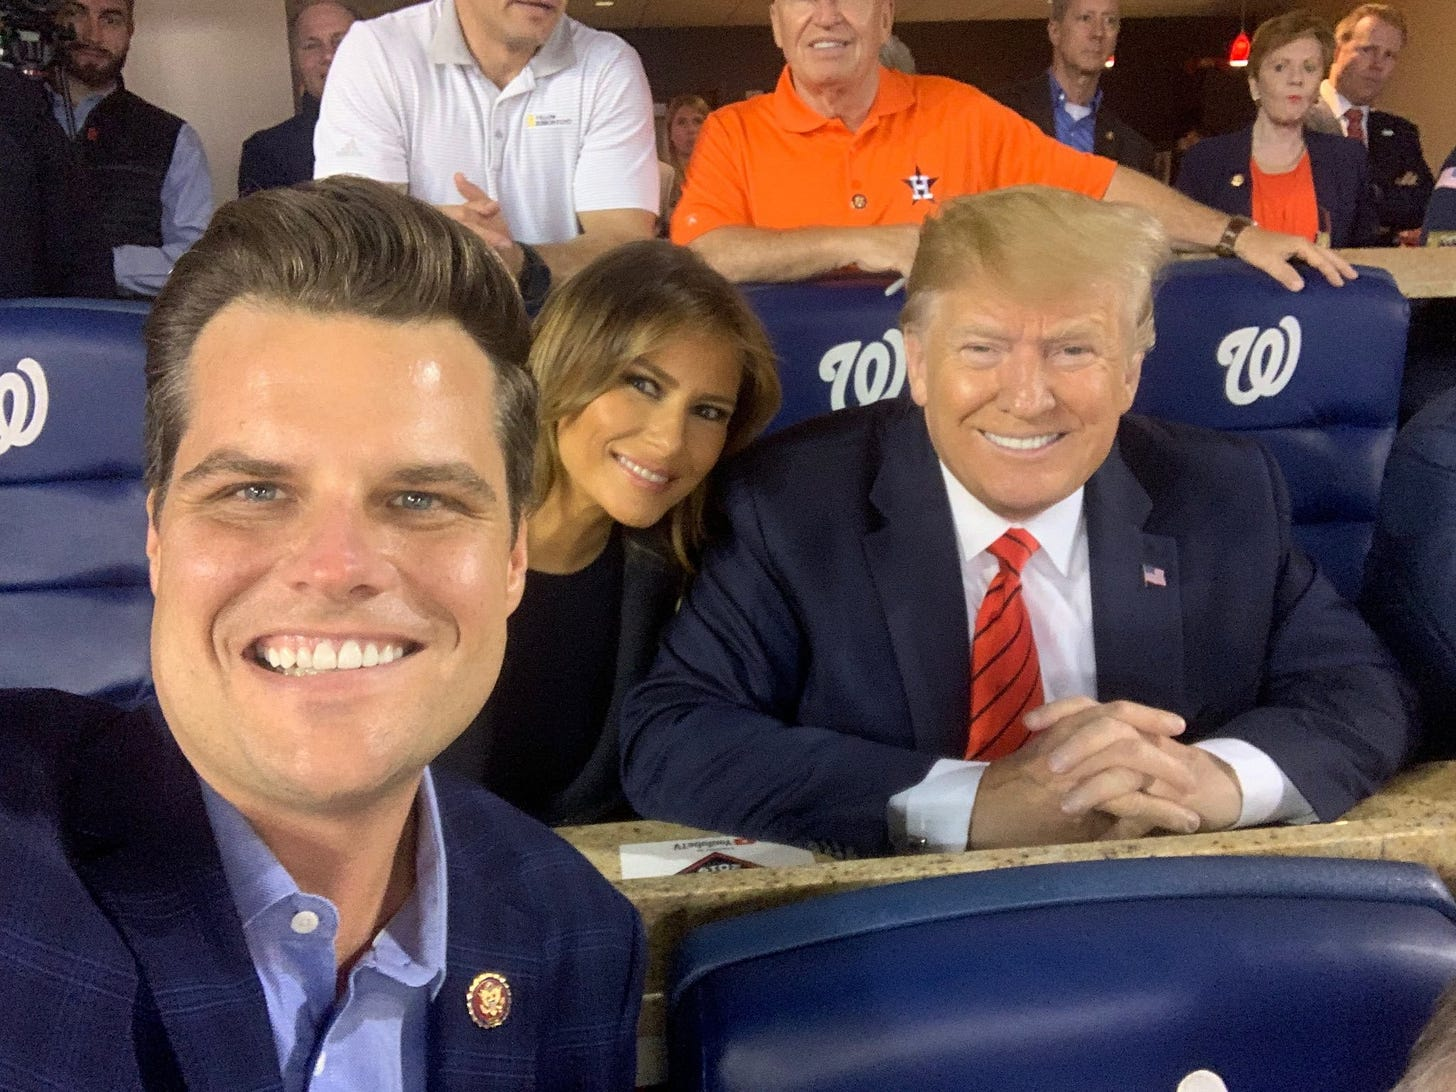 Florida Rep. Matt Gaetz says he kind of likes being called a 'tool' | Blogs